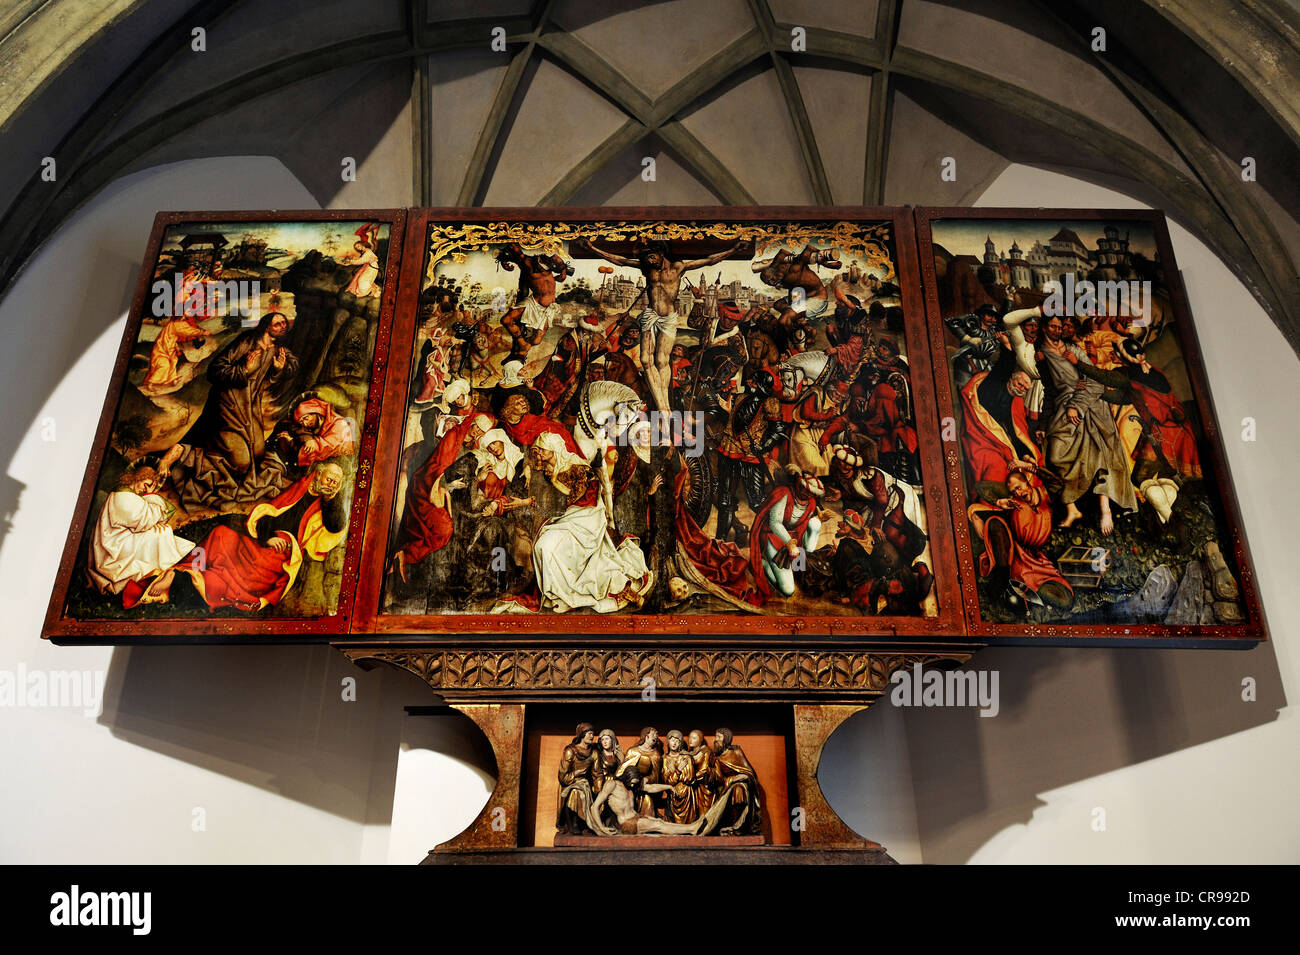 Altarpiece with scenes from the Passion from the high altar of the former Franciscan Church of St. Anthony in Munich - Stock Image